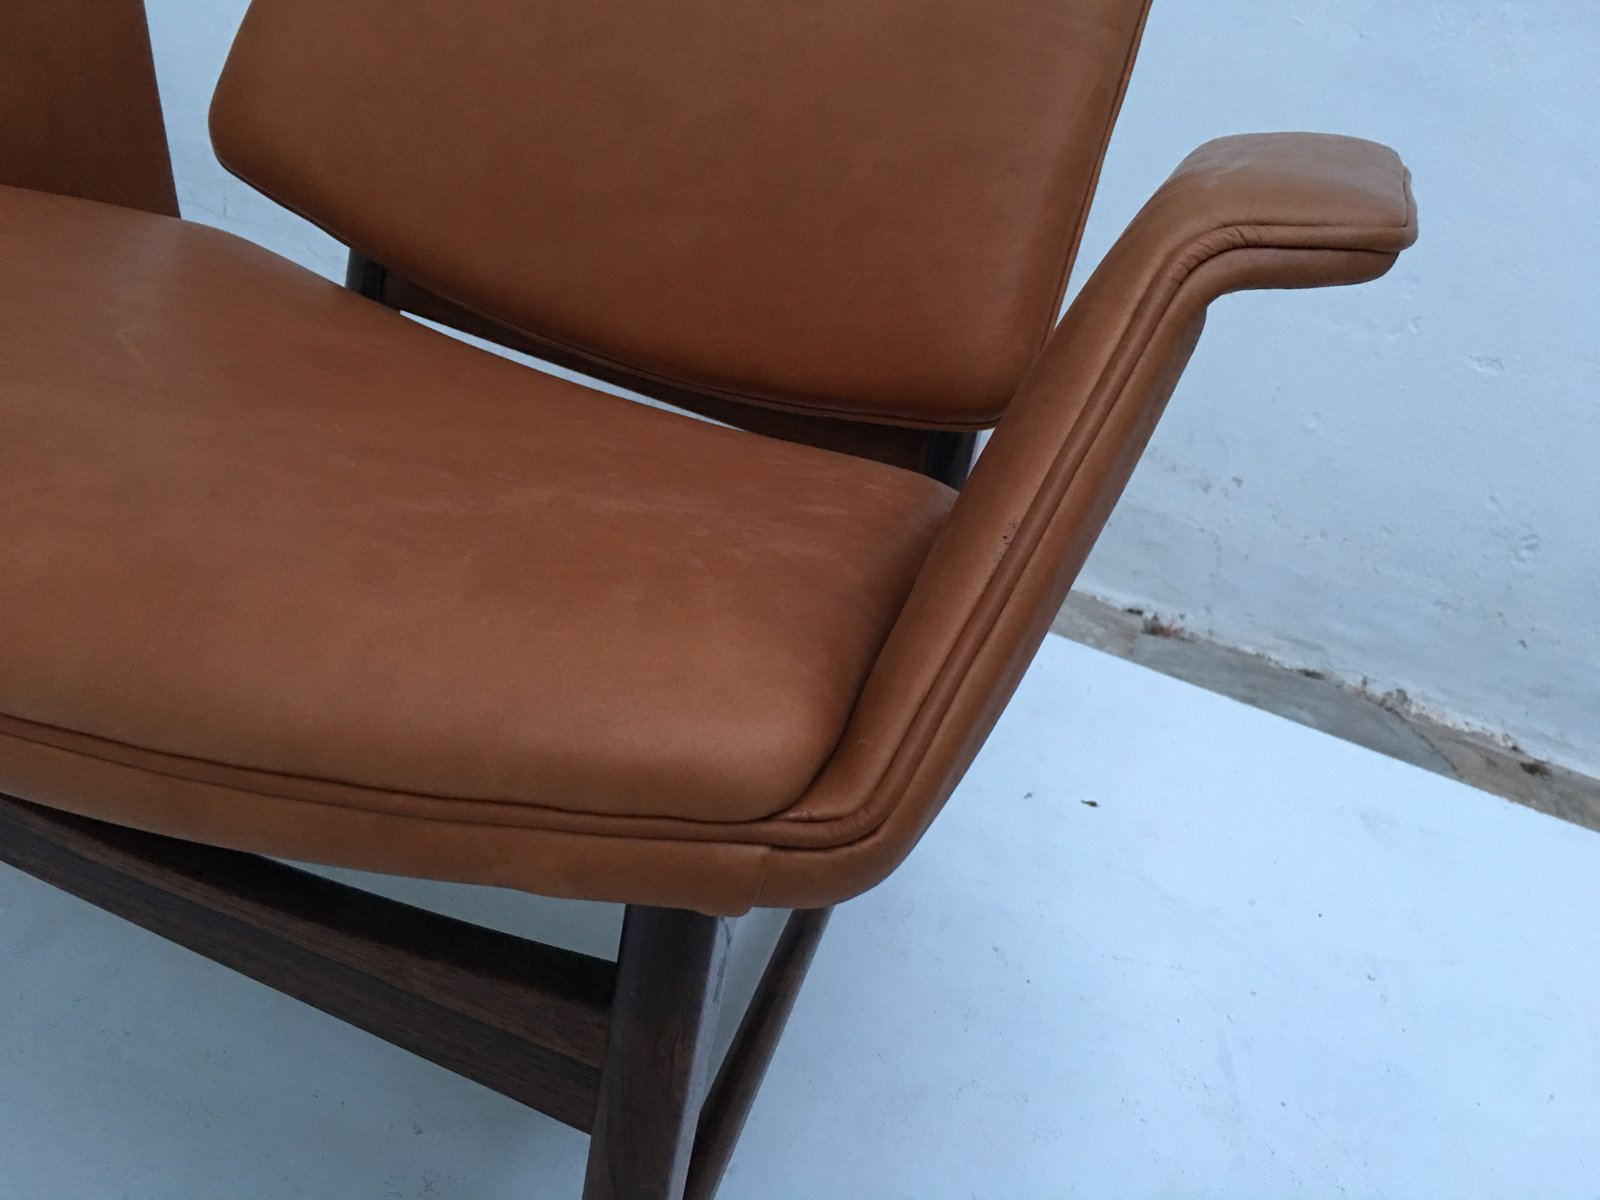 Danish Rosewood & Leather Chair by Hans Olsen 1950s for sale at